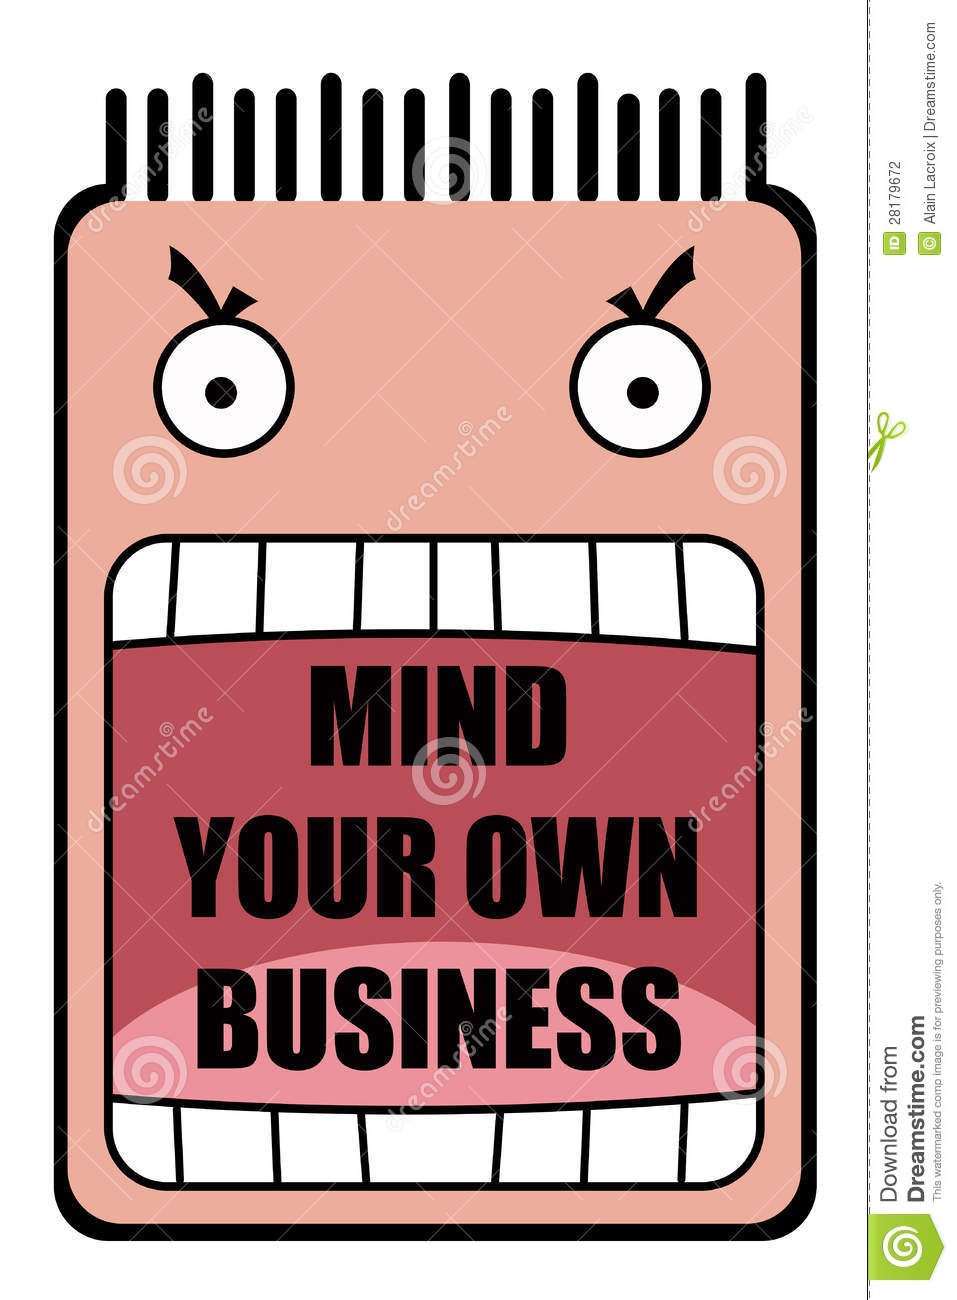 Mind Your Own Business Clipart.